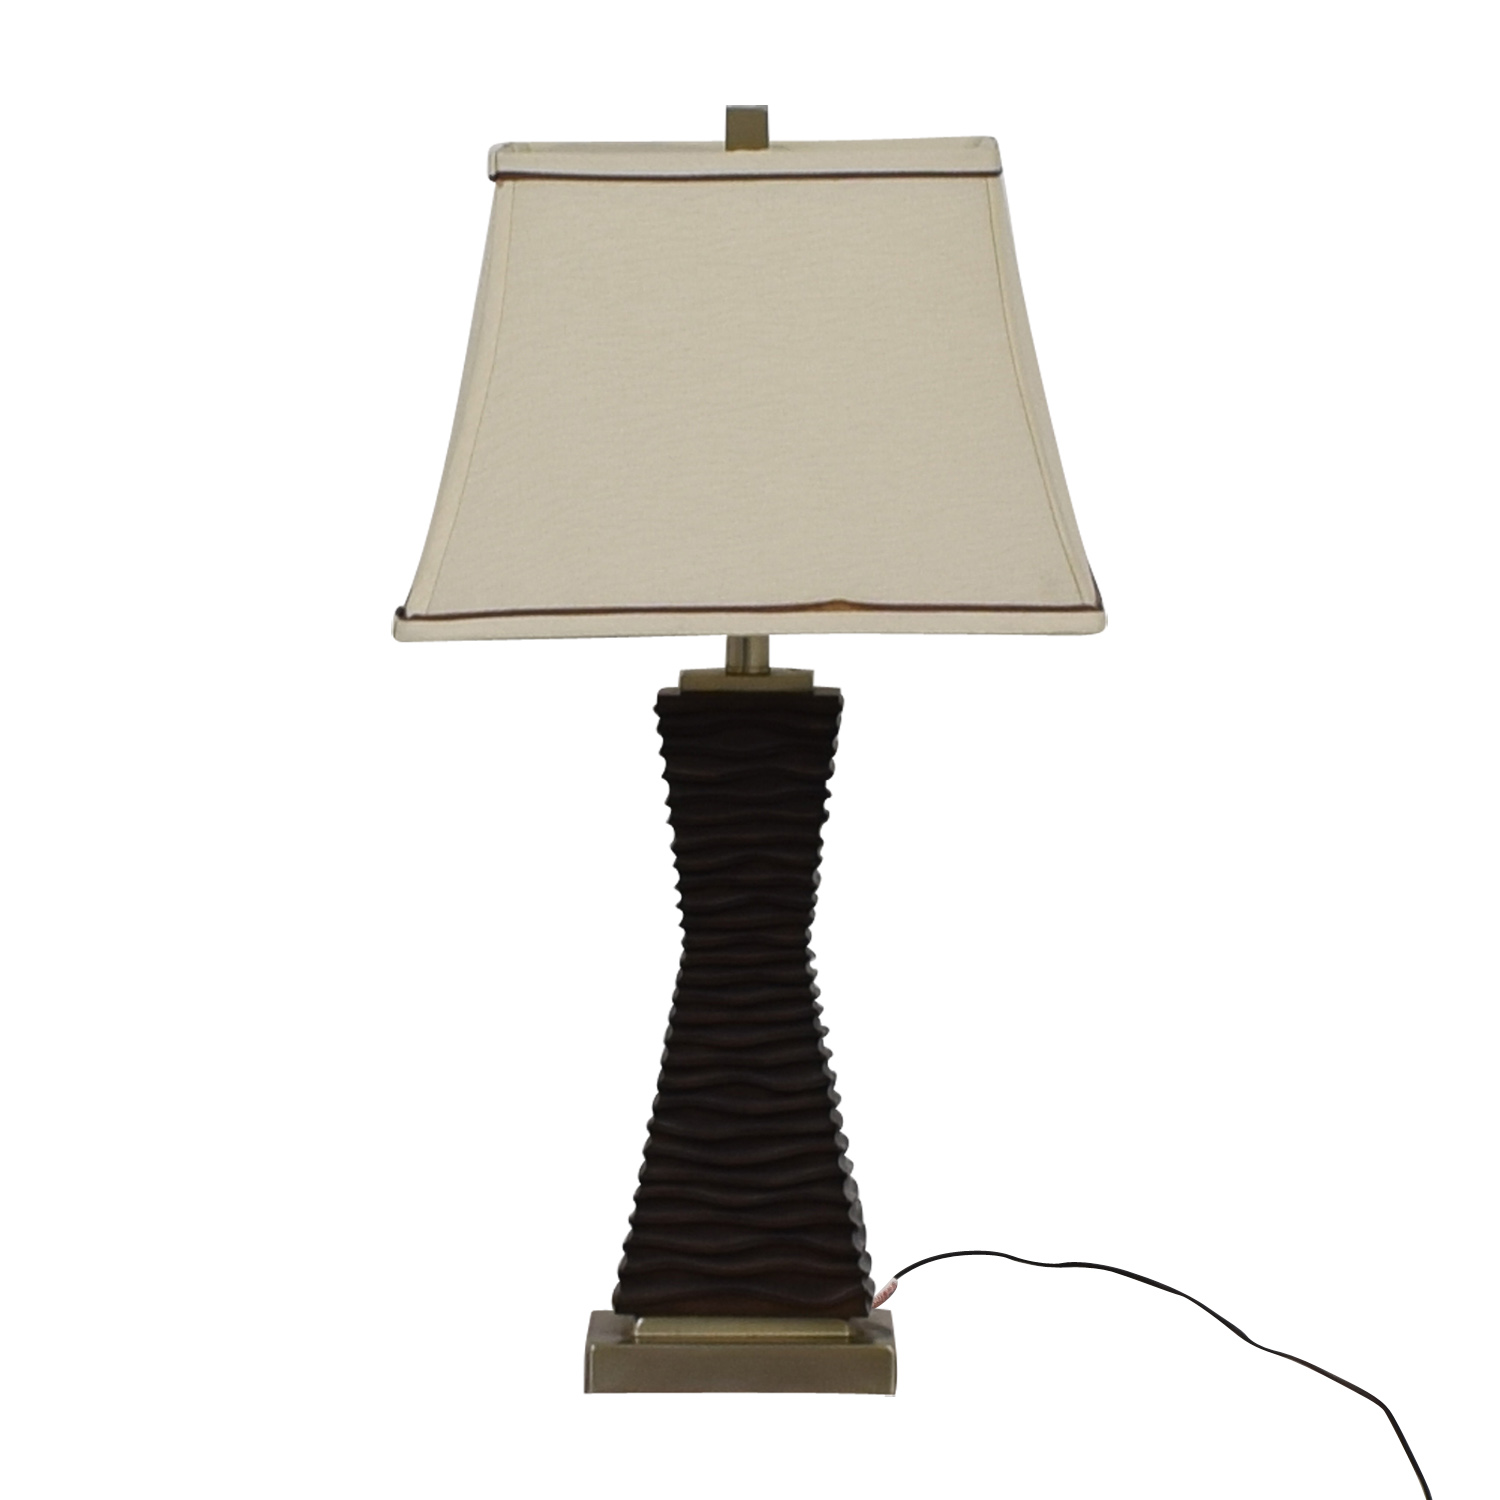 Raymour & Flanigan Raymour & Flanigan Table Lamp second hand